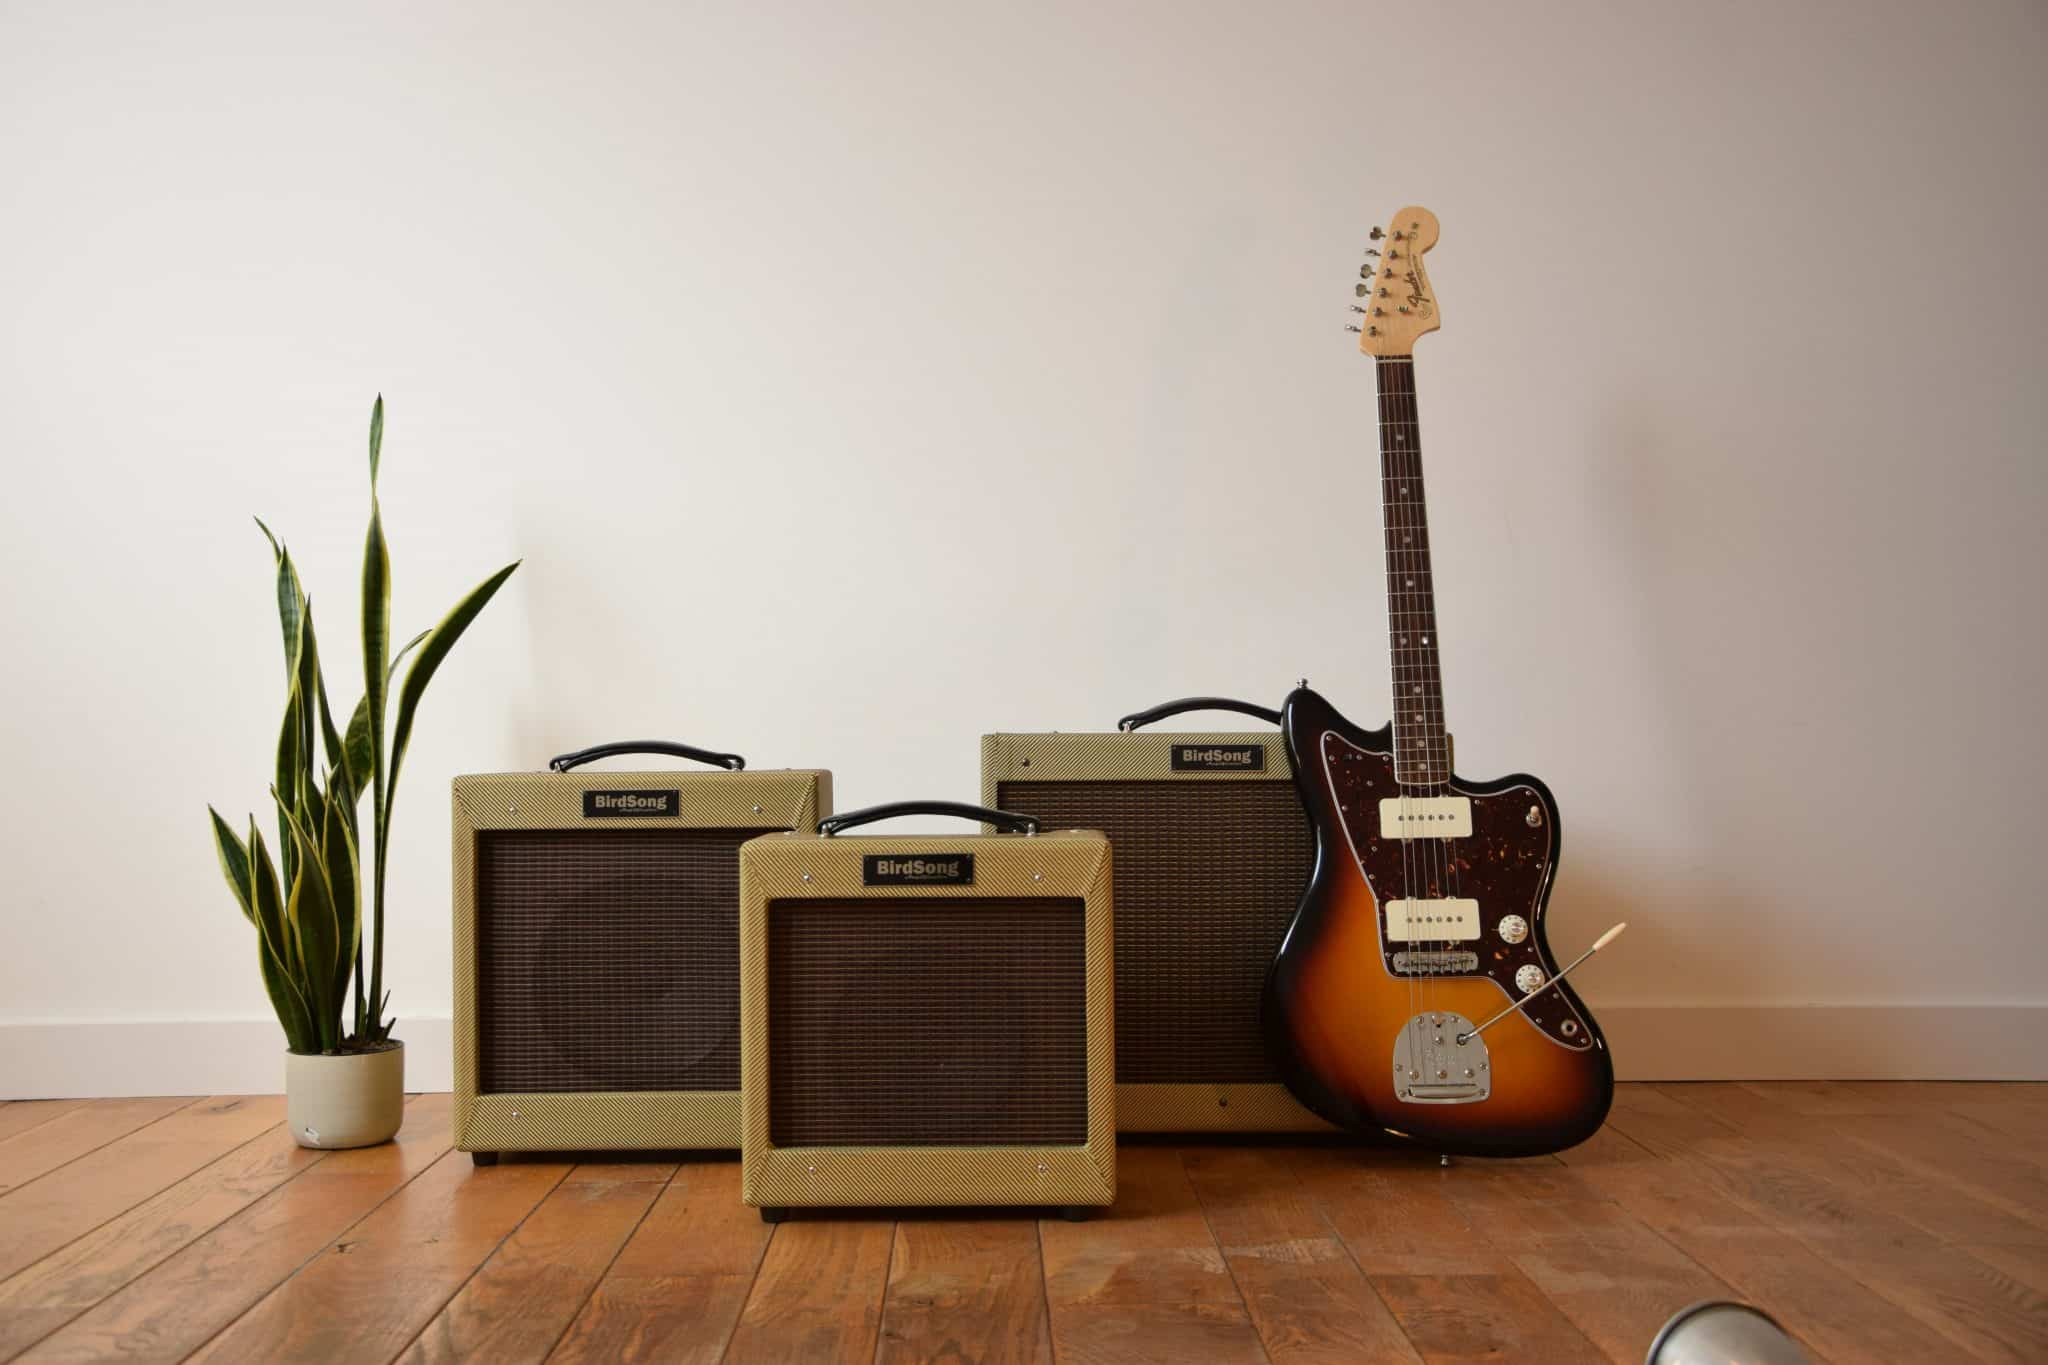 Boutique guitar amplifiers BirdSong Boutique guitar amplifiers BirdSong Champ princeton tweed deluxe